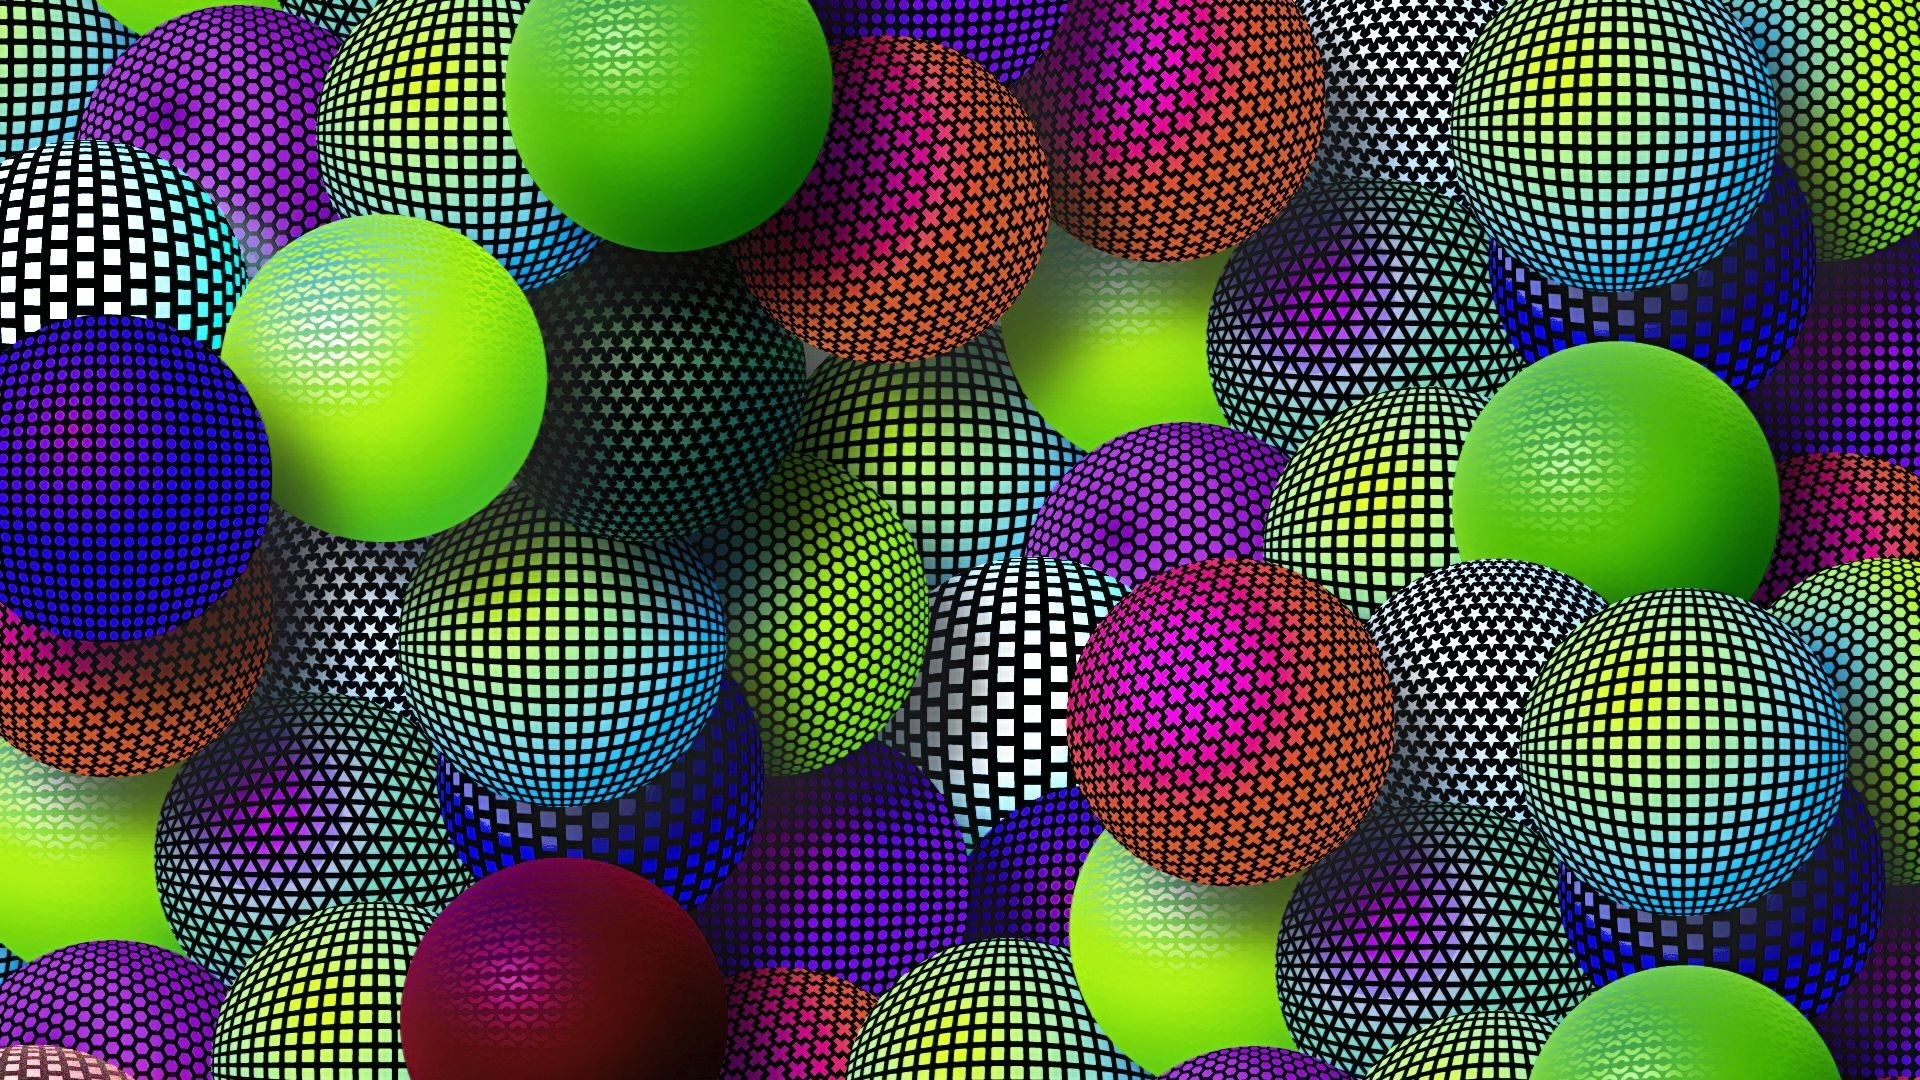 Download Wallpaper 1920x1080 Balloons Colorful Mesh Set Variety